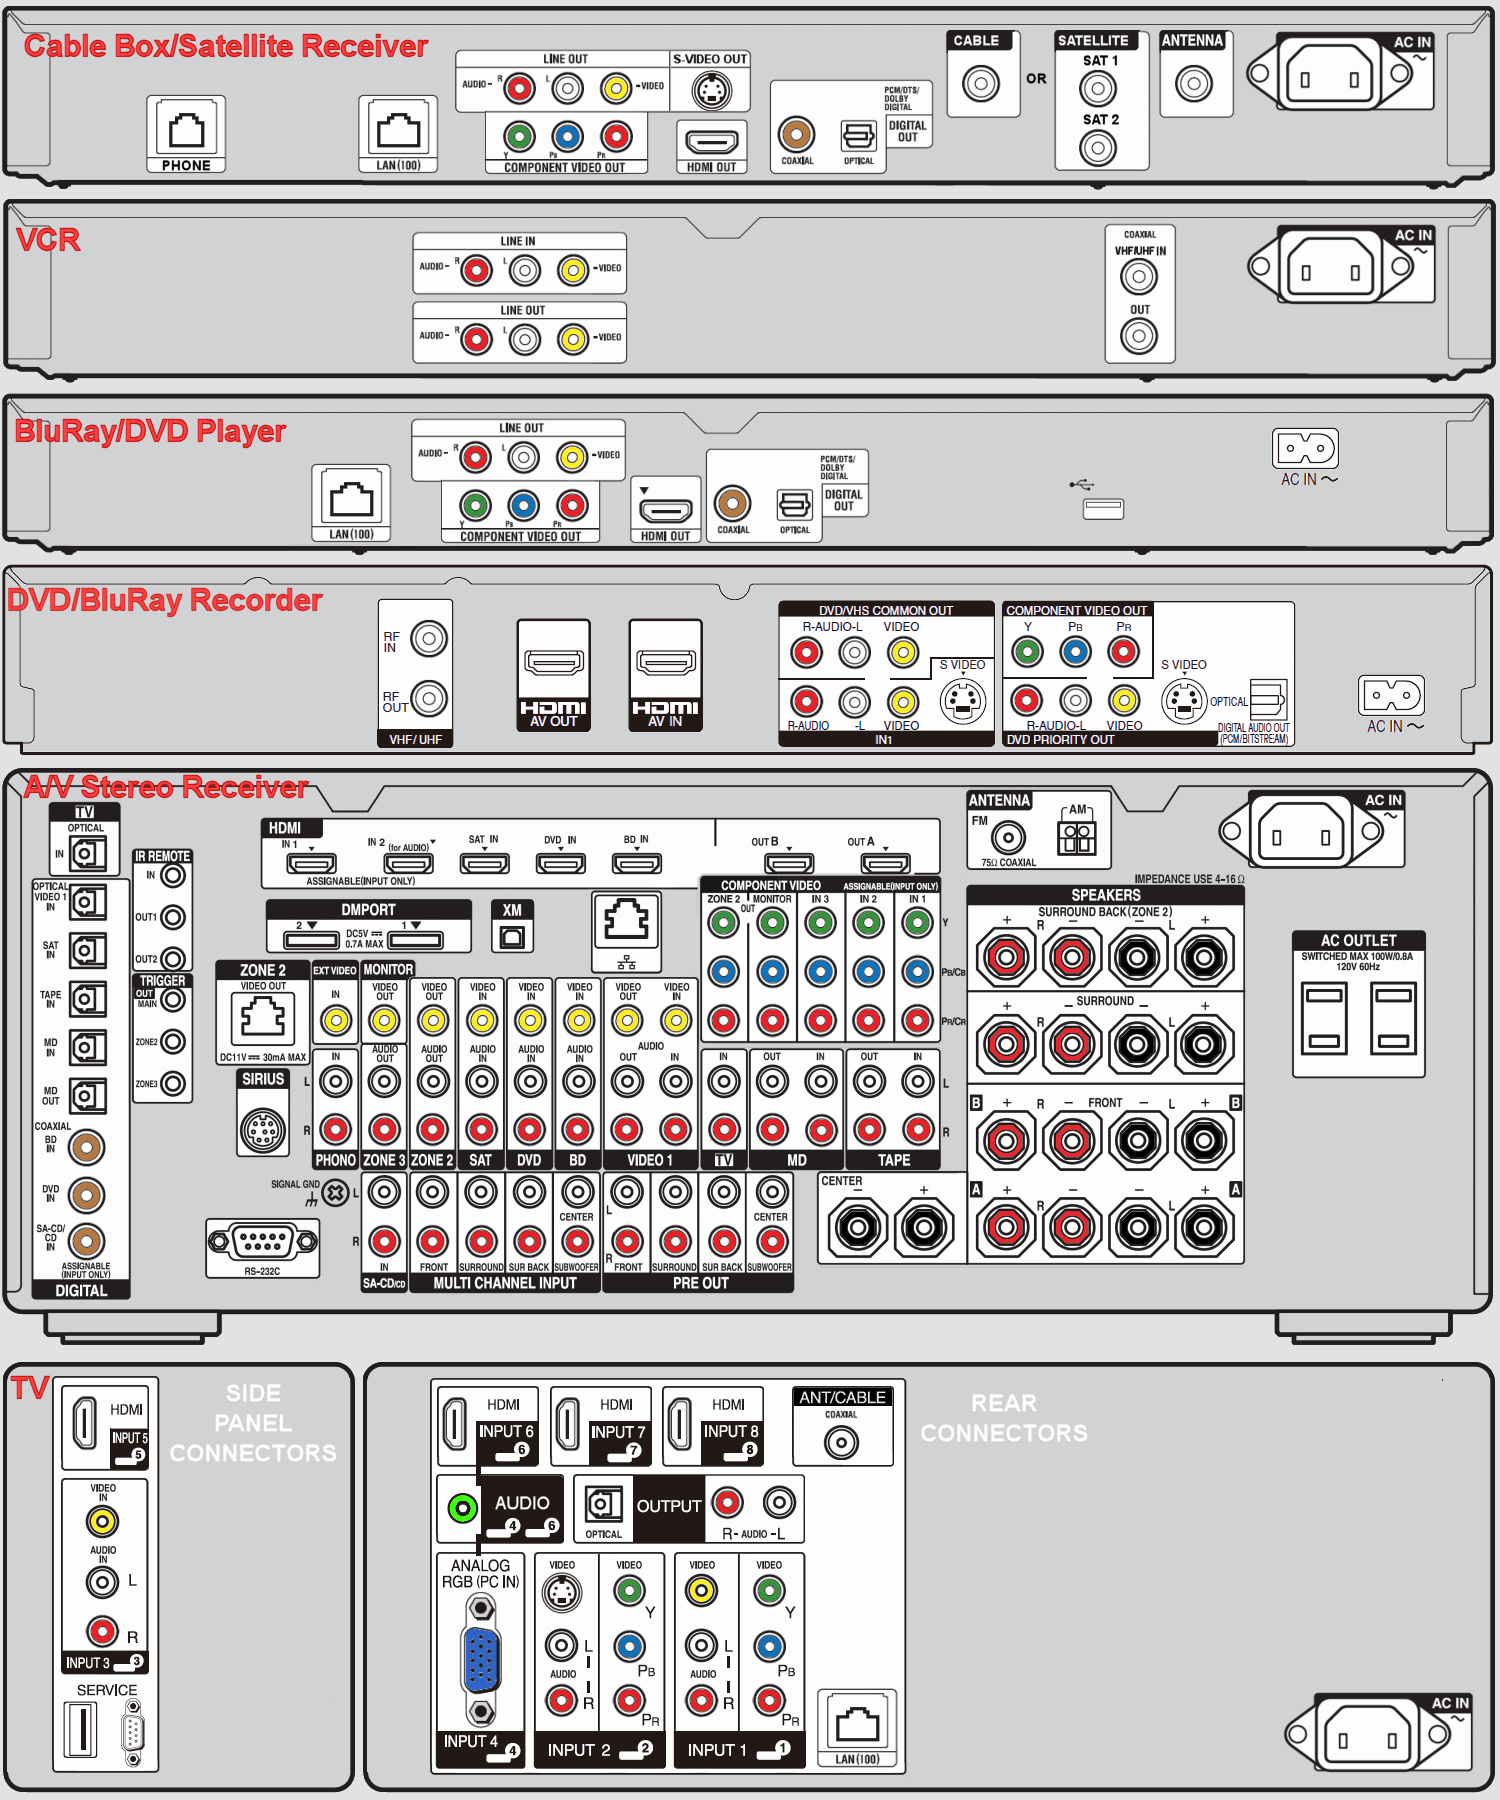 Components?resize=665%2C798 ted360beac0b6 wiring diagrams ted360beac0b6 wiring diagrams Basic Electrical Wiring Diagrams at crackthecode.co